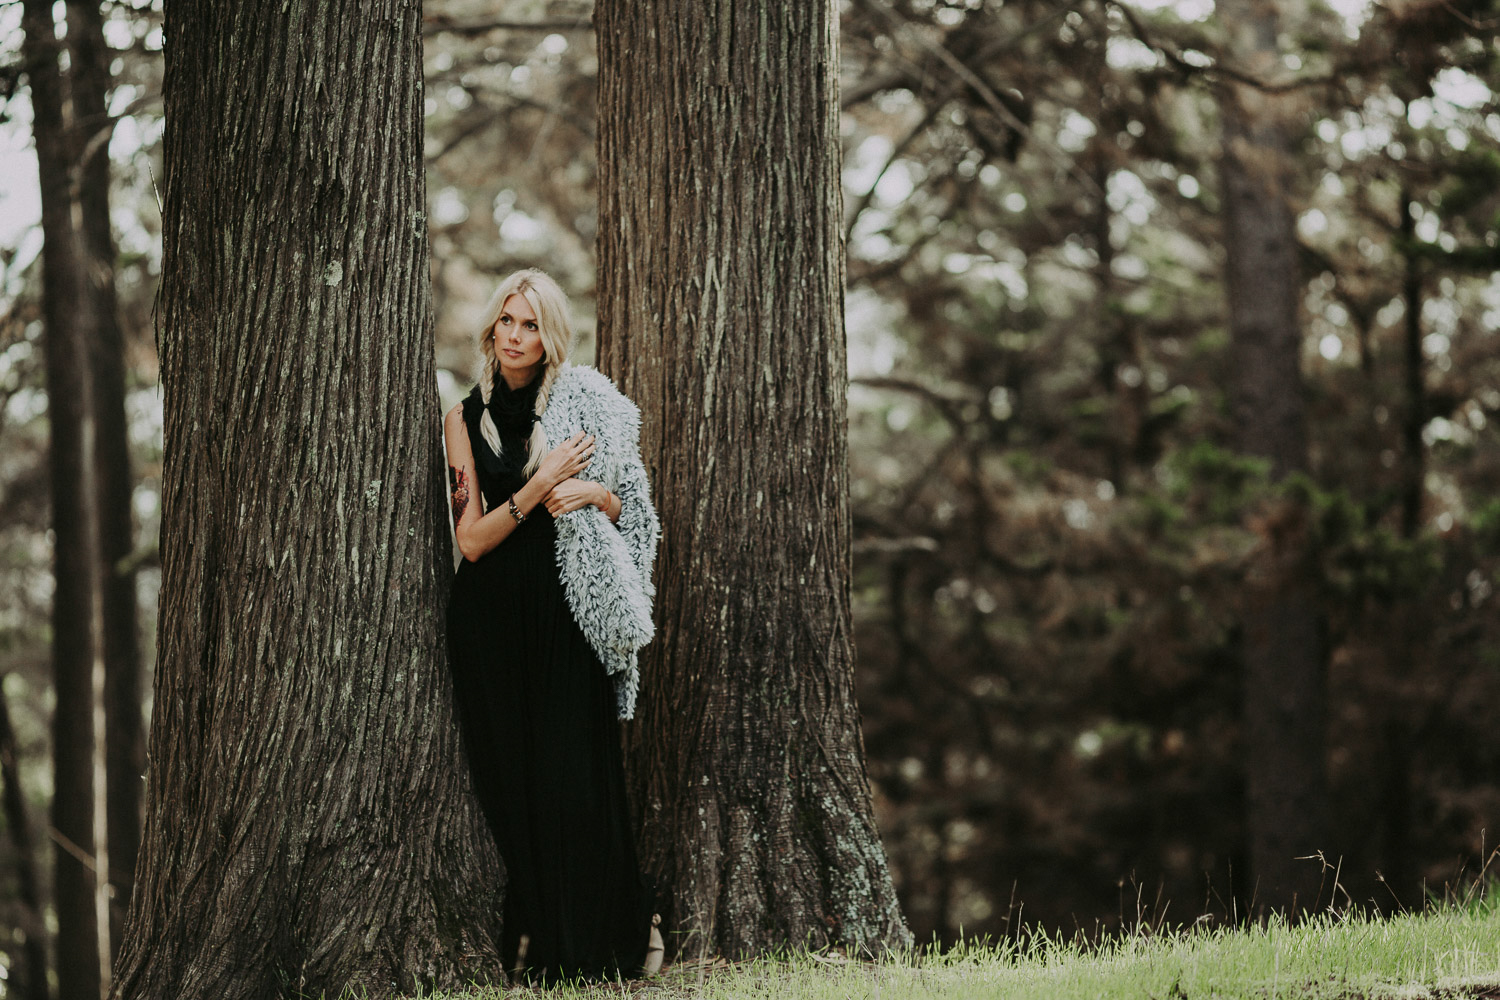 Image of a girl stands next to the tree